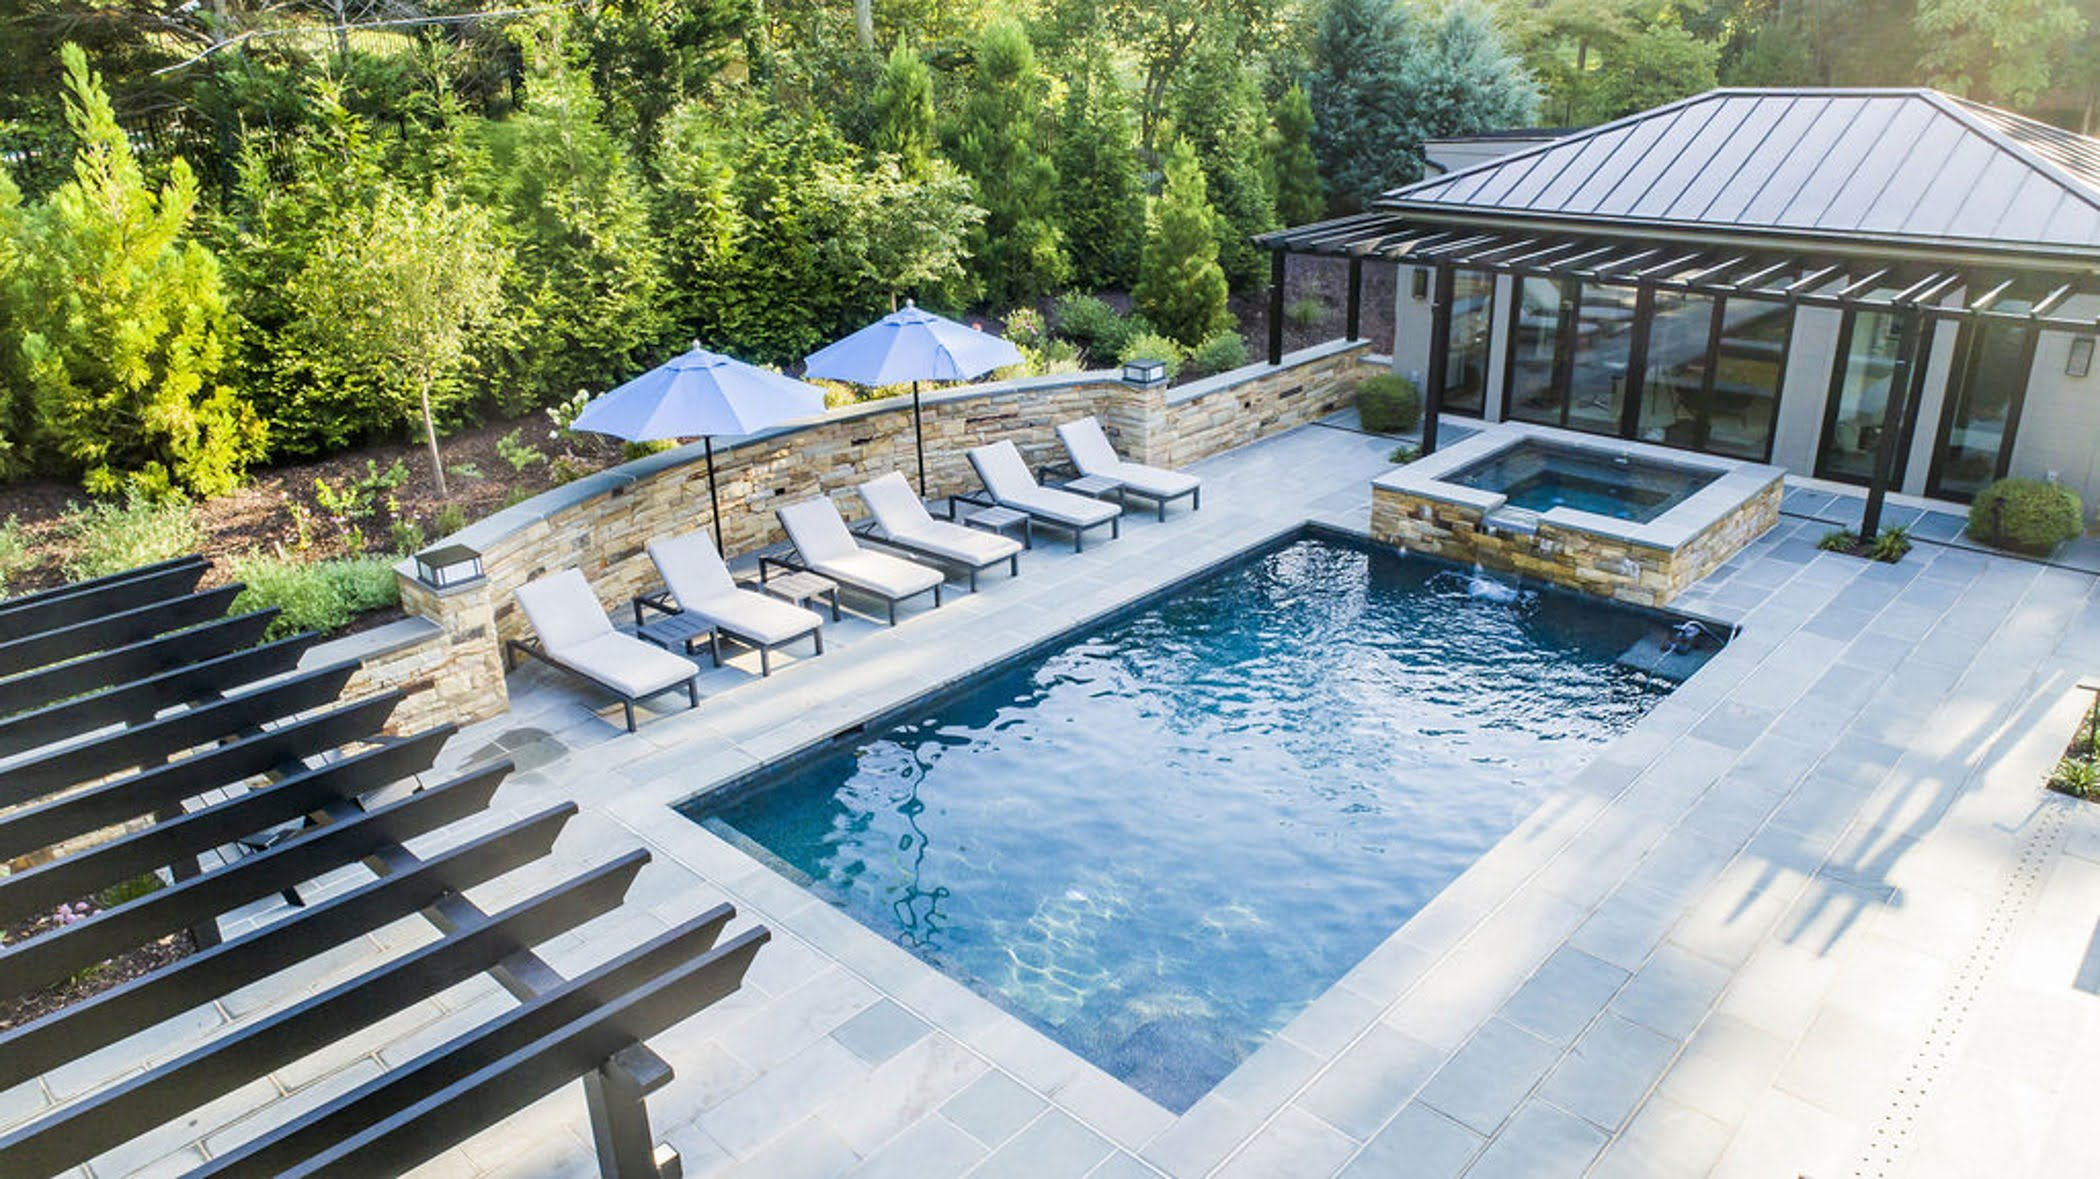 Transitional backyard patio bar and pool house with concrete pavers and cobblestone accented retaining walls and hot tub (Aerial)